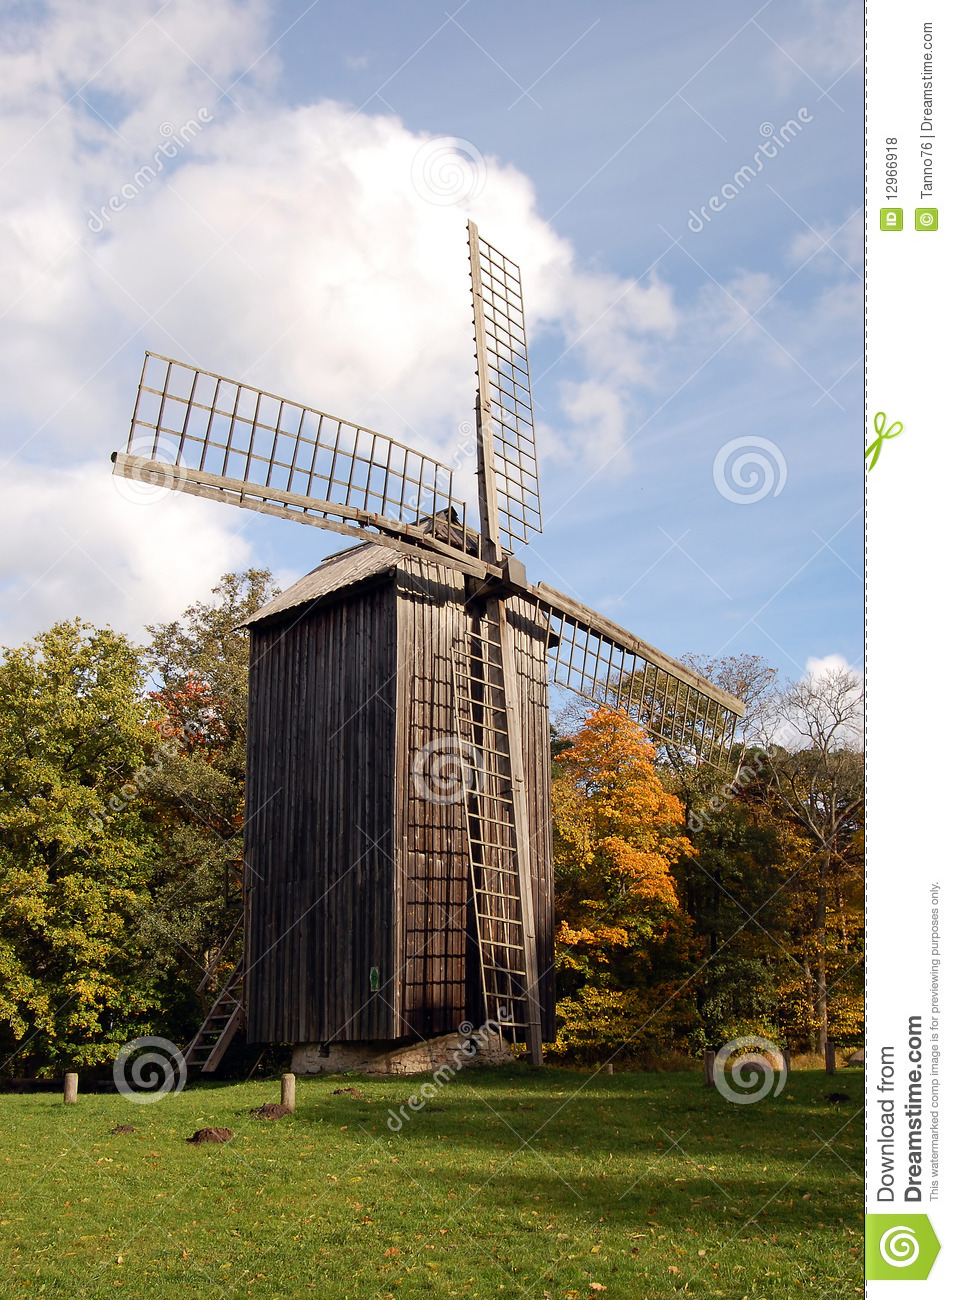 Old Windmill Royalty Free Stock Photos - Image: 12966918